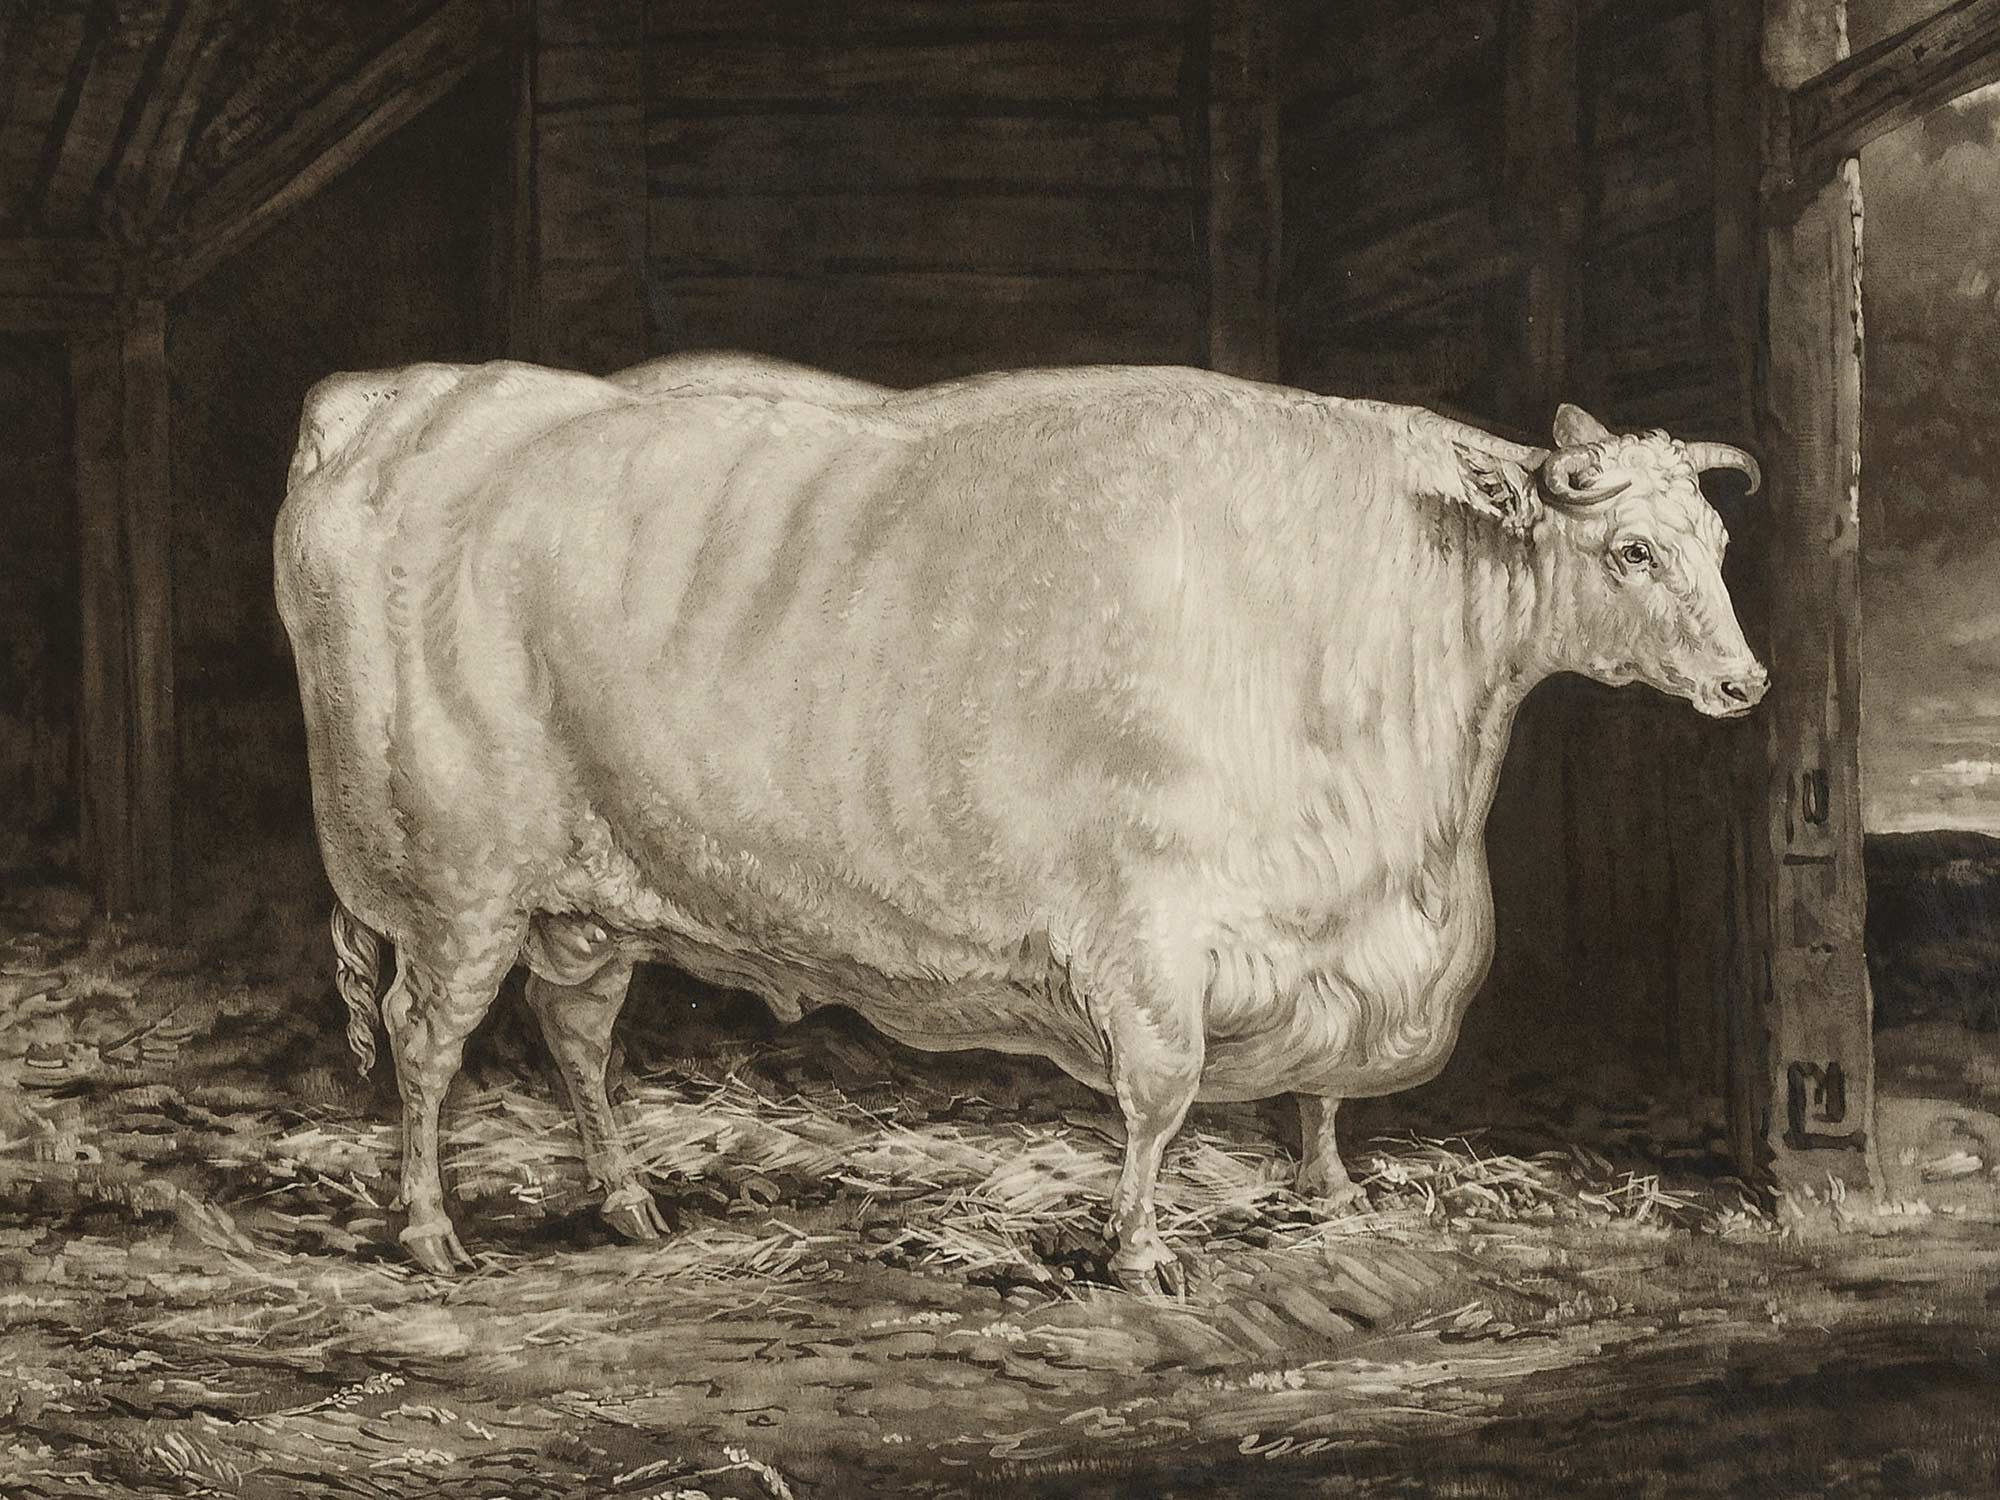 Painting of the Durham White ox